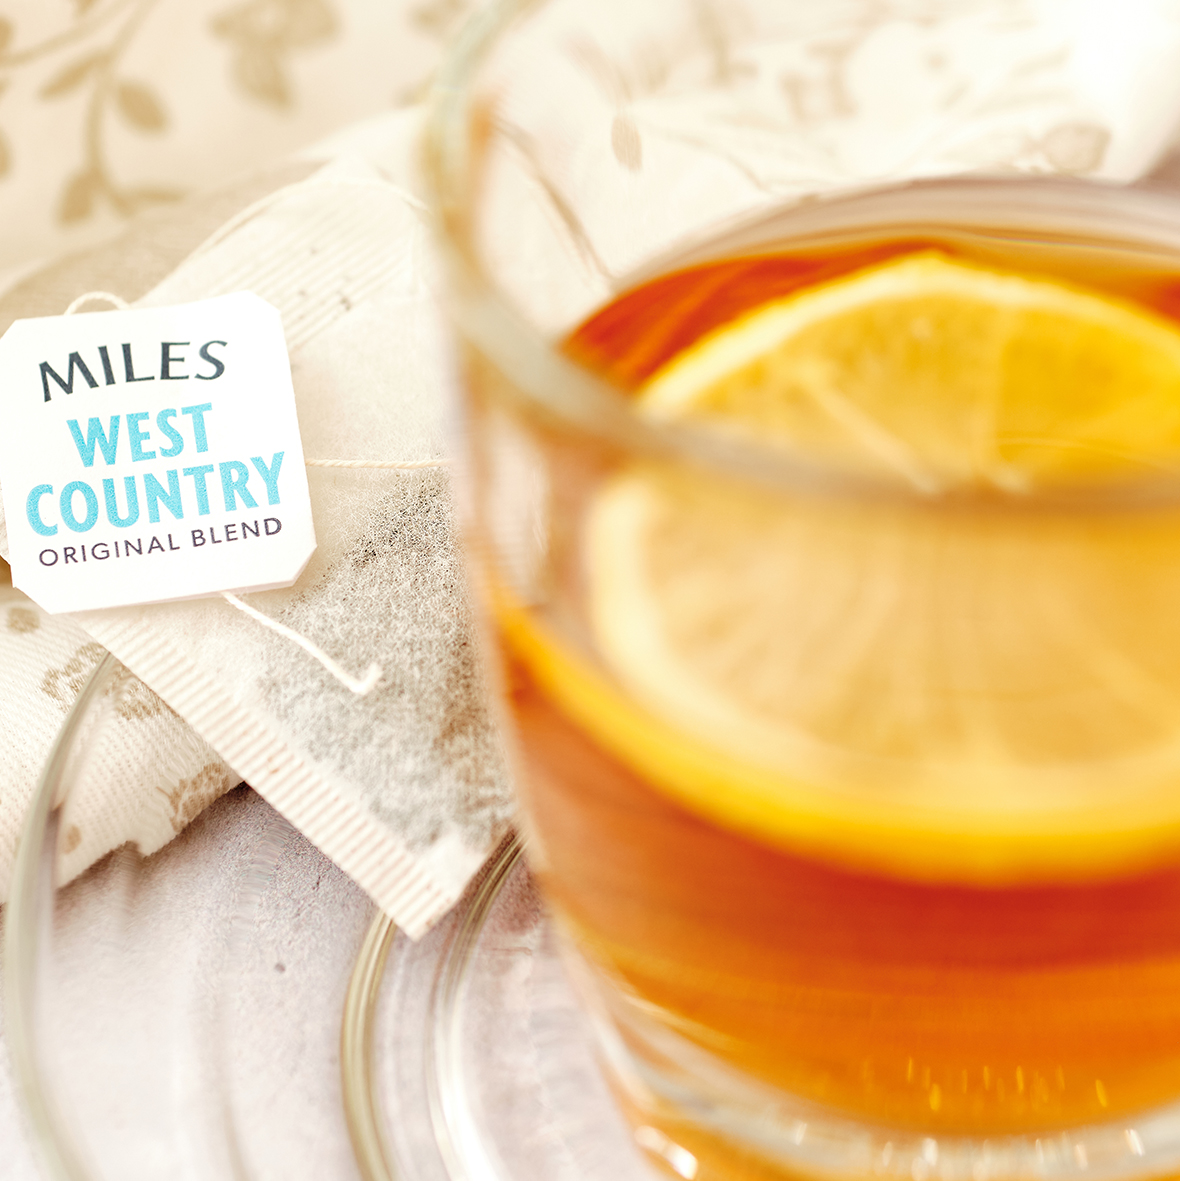 Nothing beats a great cup of tea   Credit: Copland Photography  #MomentswithMiles #MilesTea #TeaLeaf #Cuppa #TimeforTea #Lemon #WellnessWednesday #Humpday #WestCountry #Somerset #Exmoorpic.twitter.com/GDv1a1s6wn